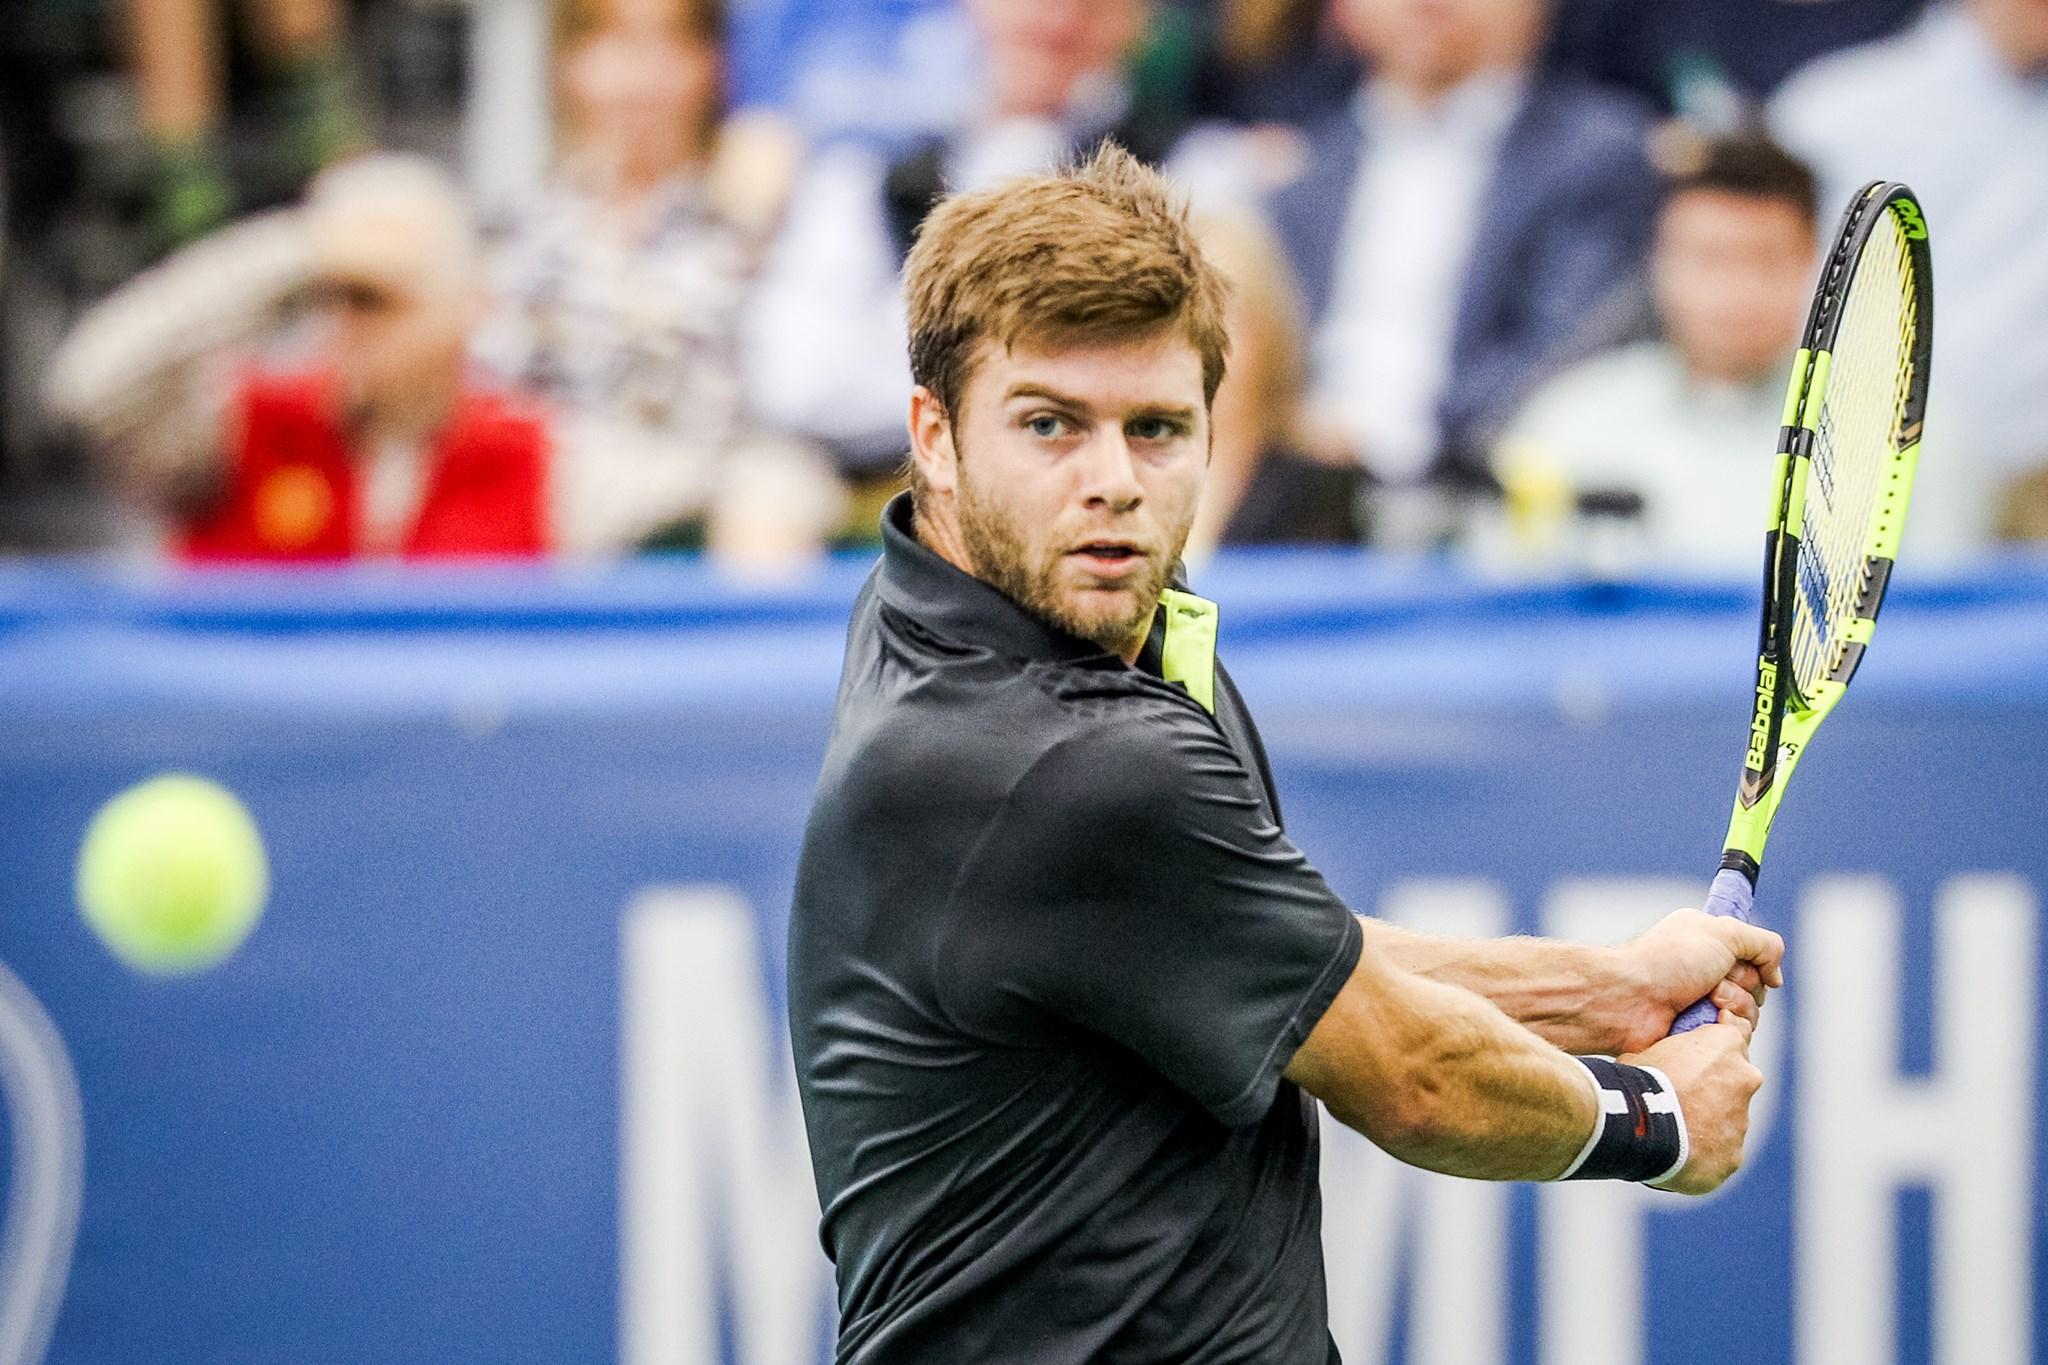 Ryan Harrison is Clear of Accusations, but Bad Blood with Donald Young Still Remains